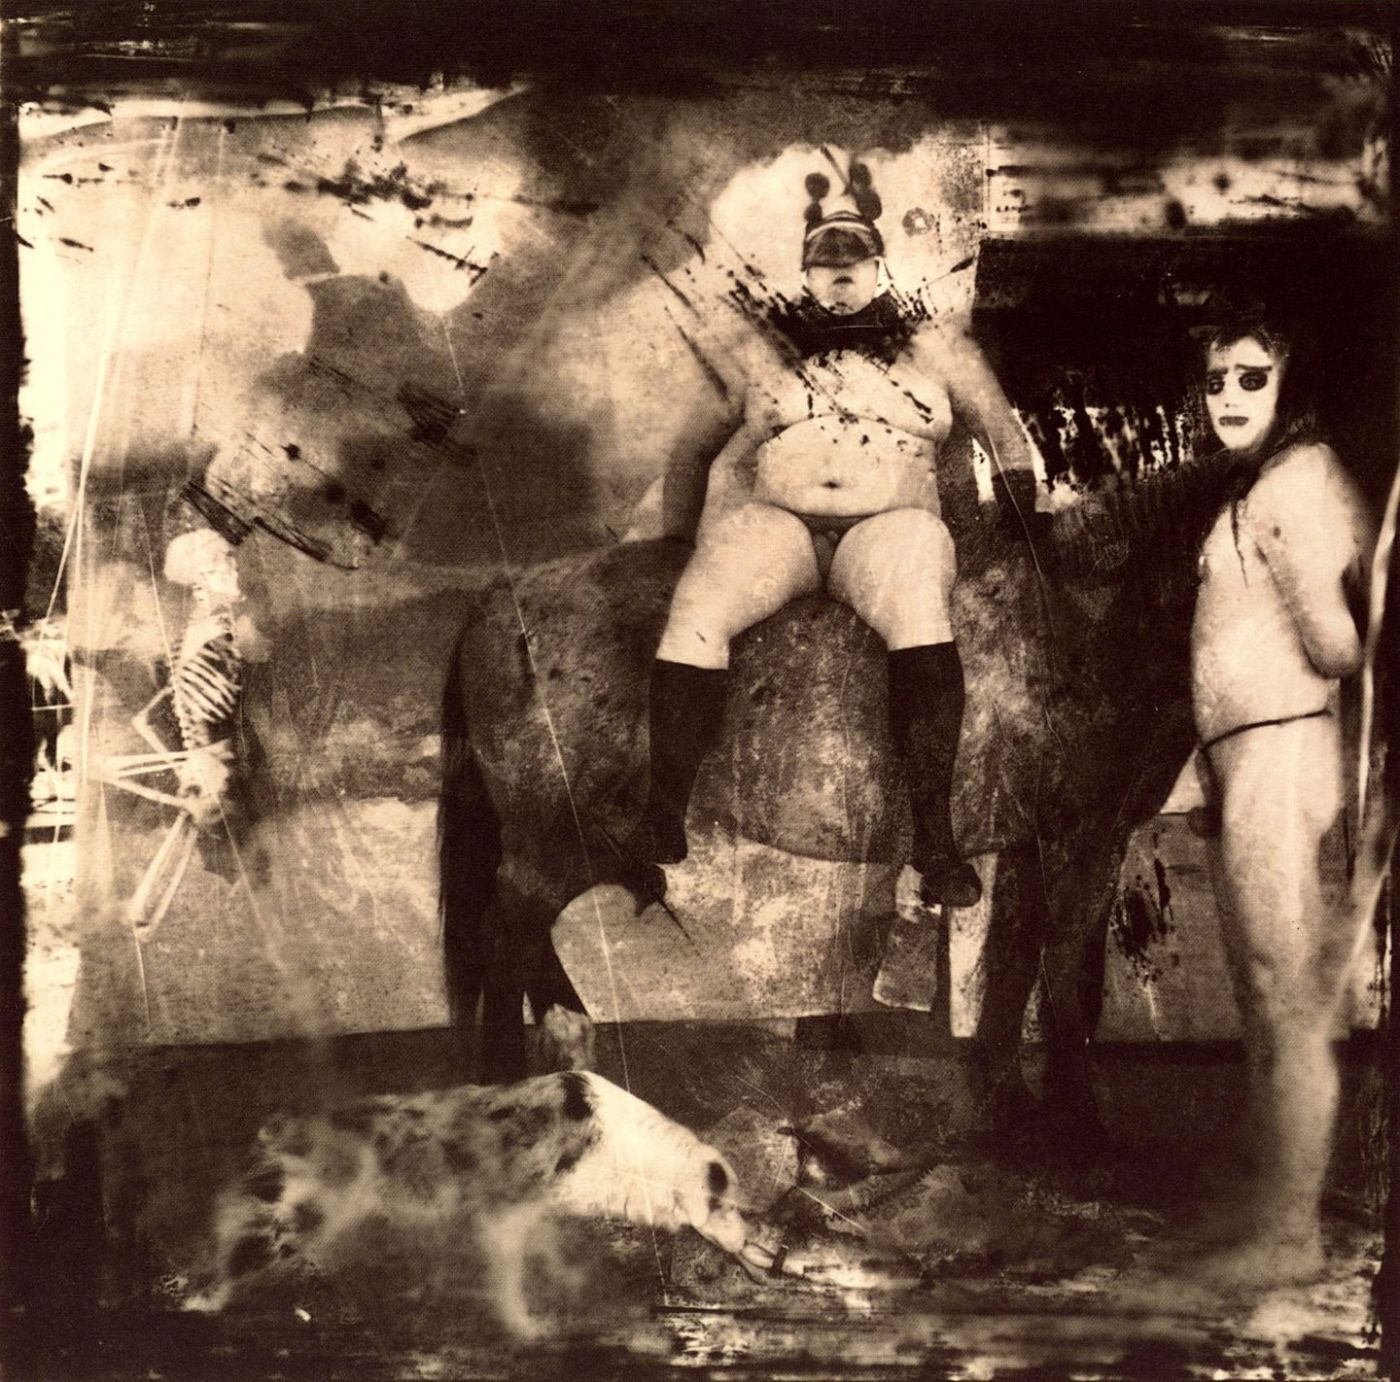 Joel-Peter Witkin: Gods of Earth and Heaven (Second Edition)